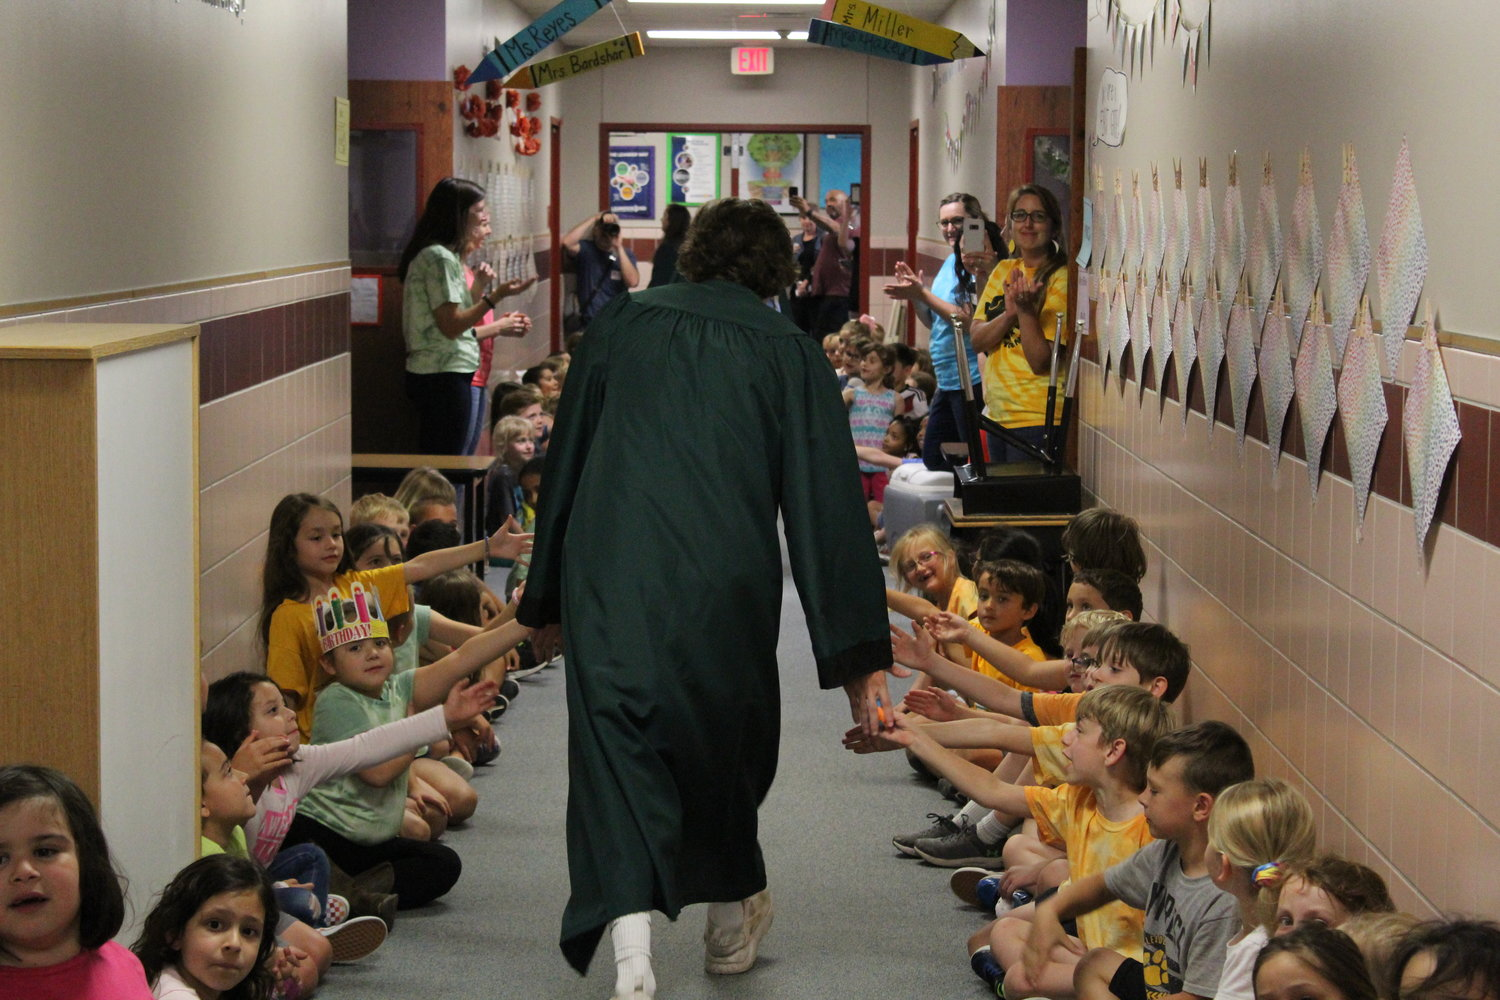 A senior from Cedar Park High School high-fives students from Cypress Elementary School while running to rejoin the line of seniors on May 29, 2019.